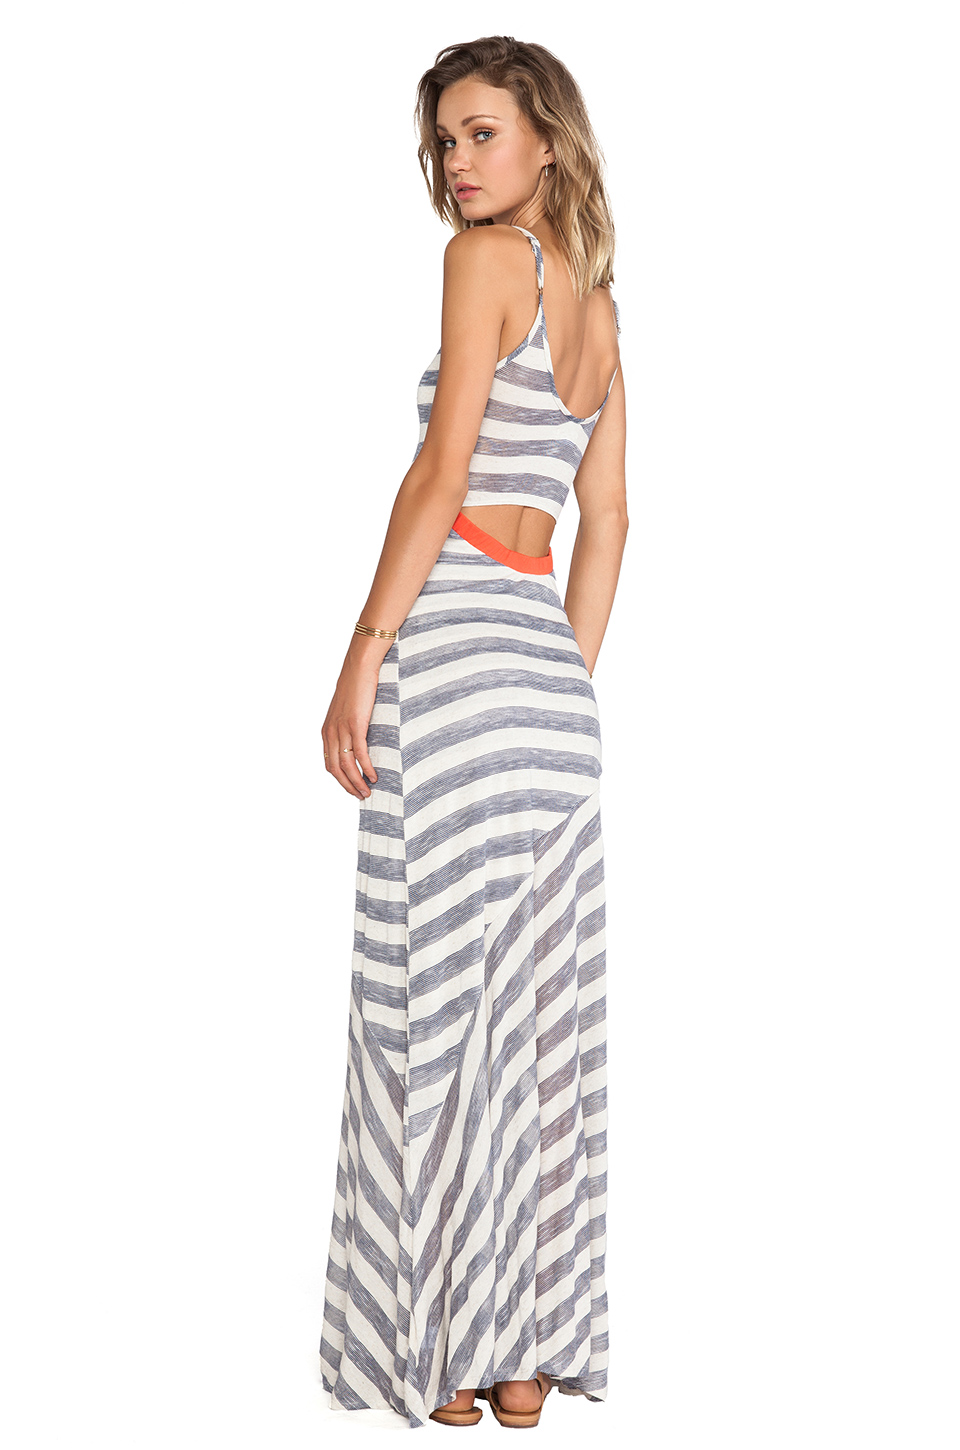 Nation LTD Annondale Dress in Oatmeal Stripe from REVOLVEclothing.com